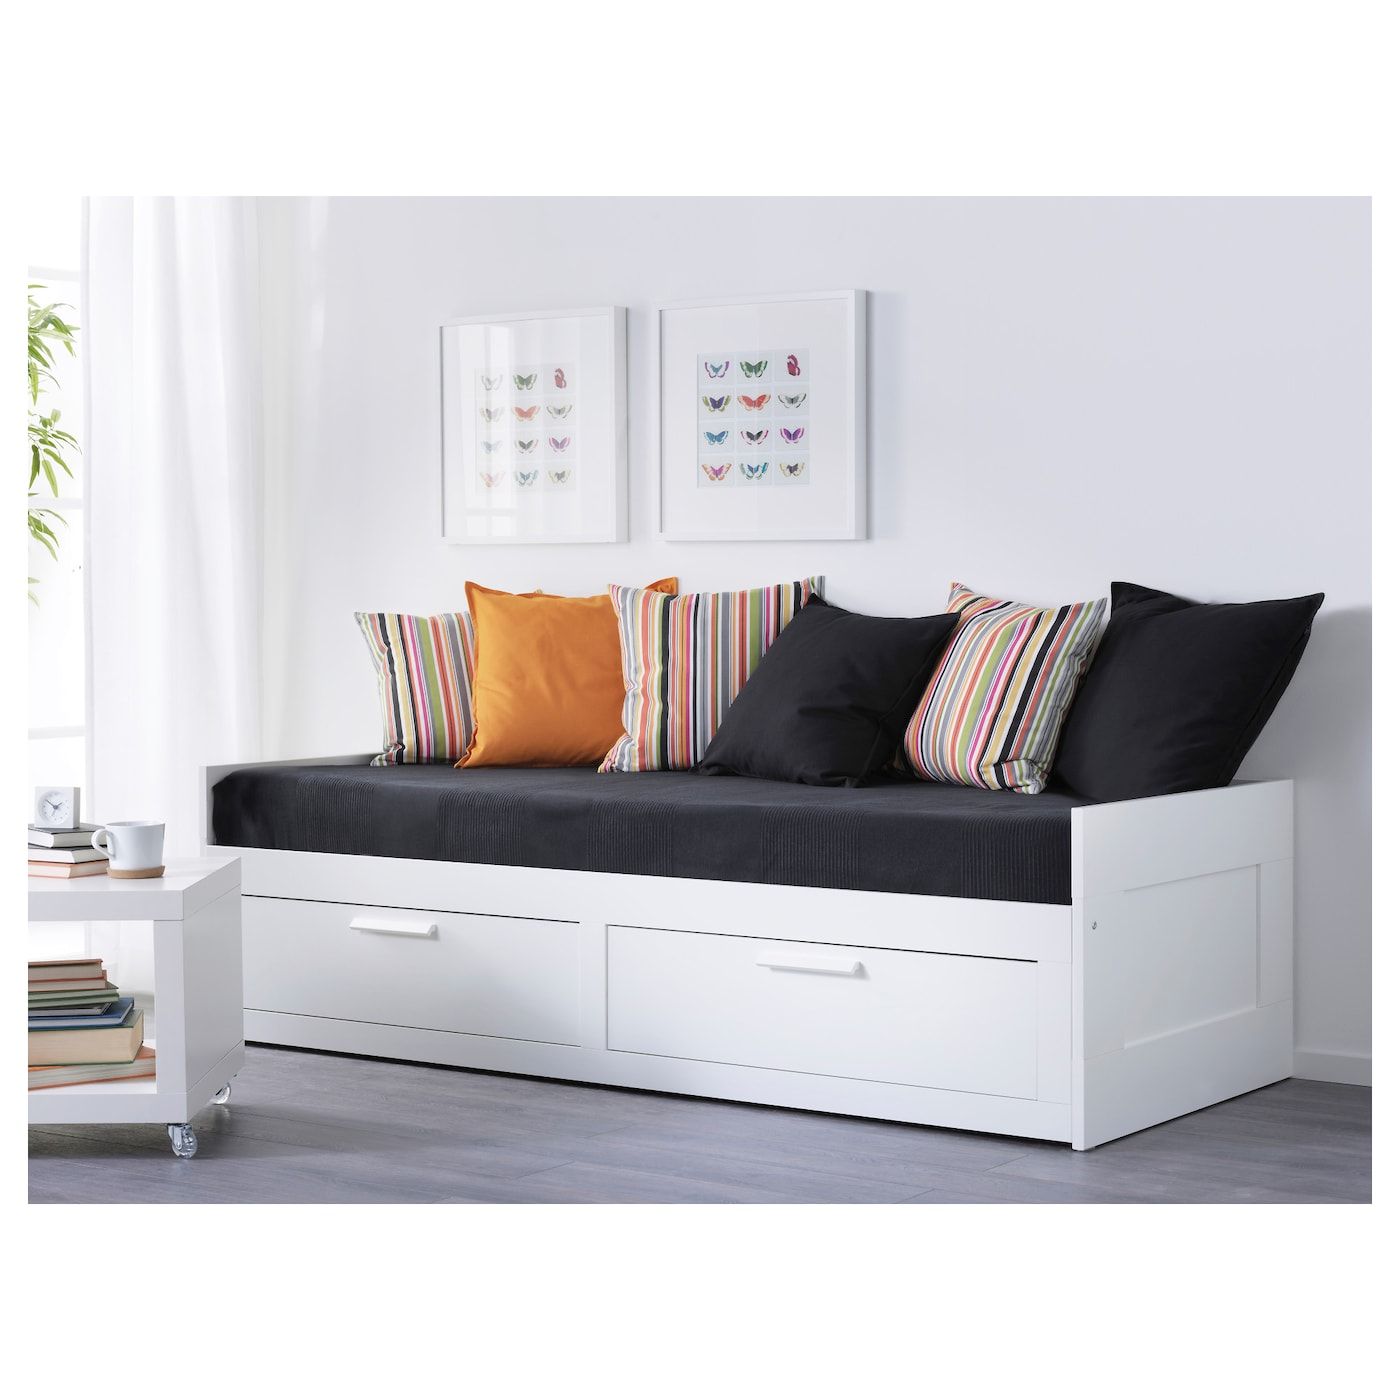 brimnes day bed w 2 drawers 2 mattresses white moshult